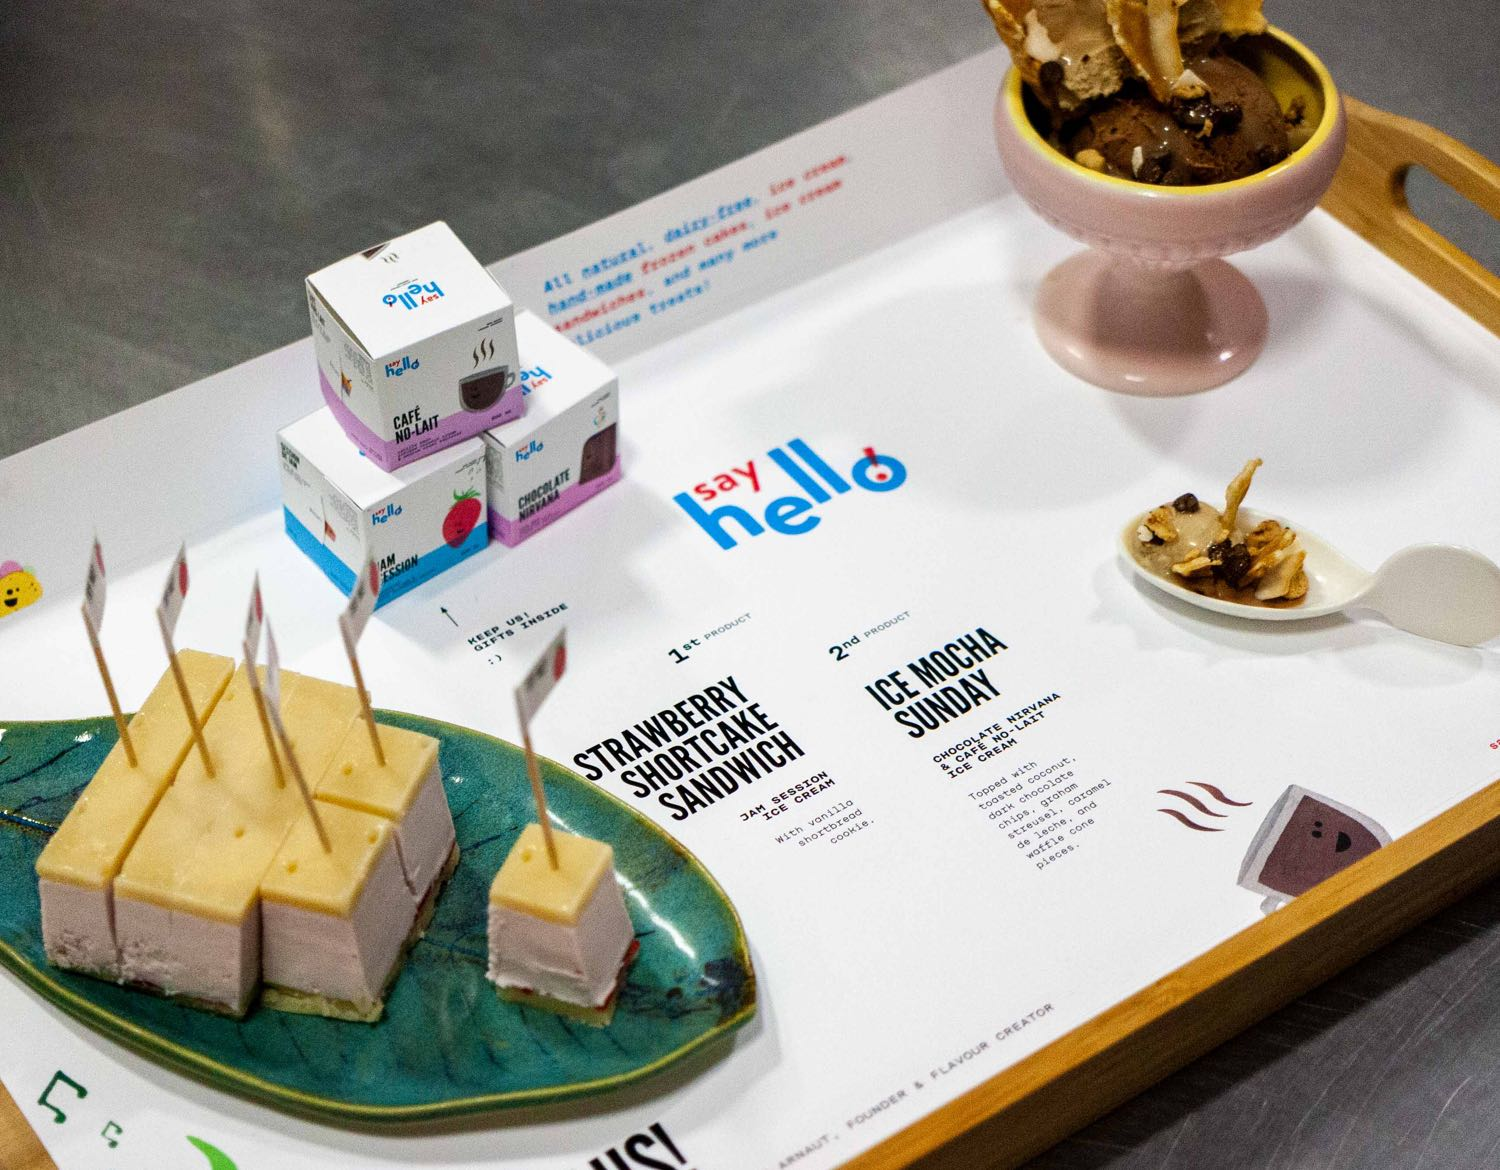 Say Hello presentation for BC Product of the Year award, with bite size plated ice cream and informational tray describing the product — by Dima.